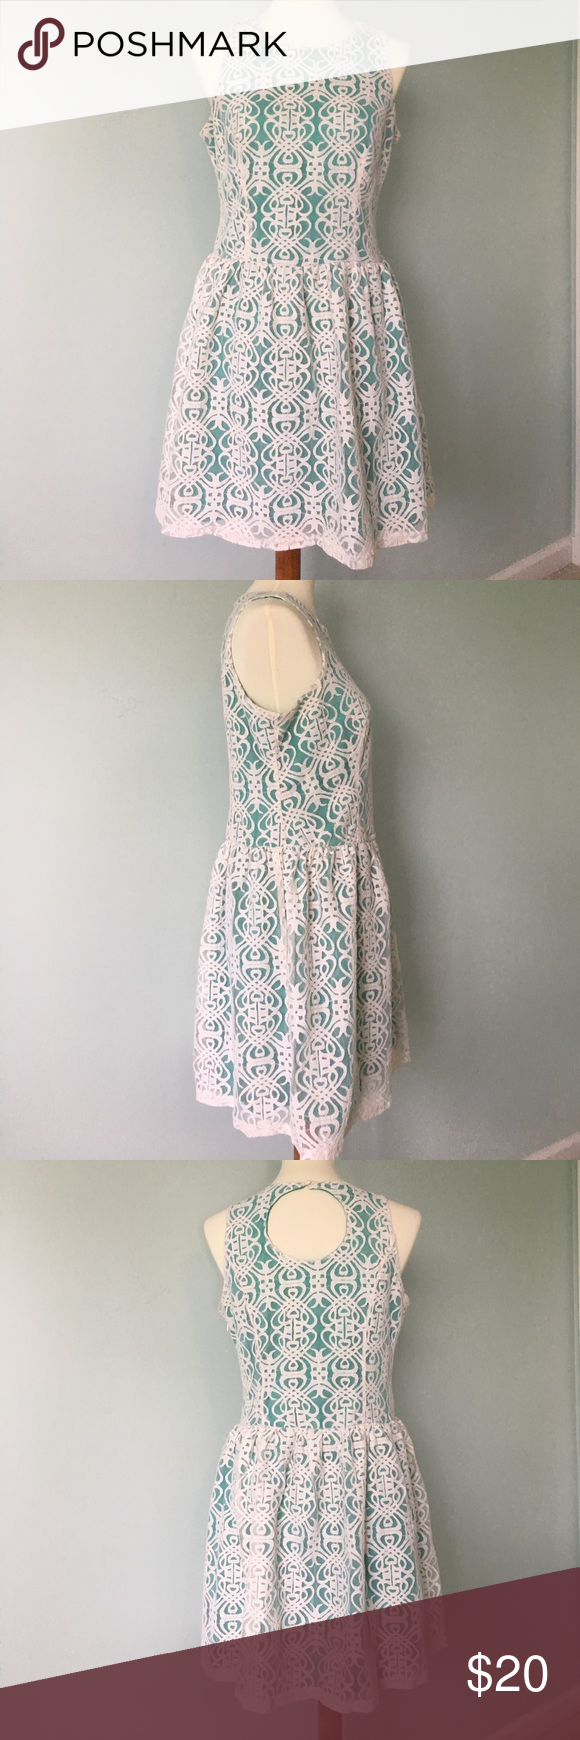 Green dress with lace overlay  Pinky Green u Lace Dress Size L  Green lace dresses Green lace and